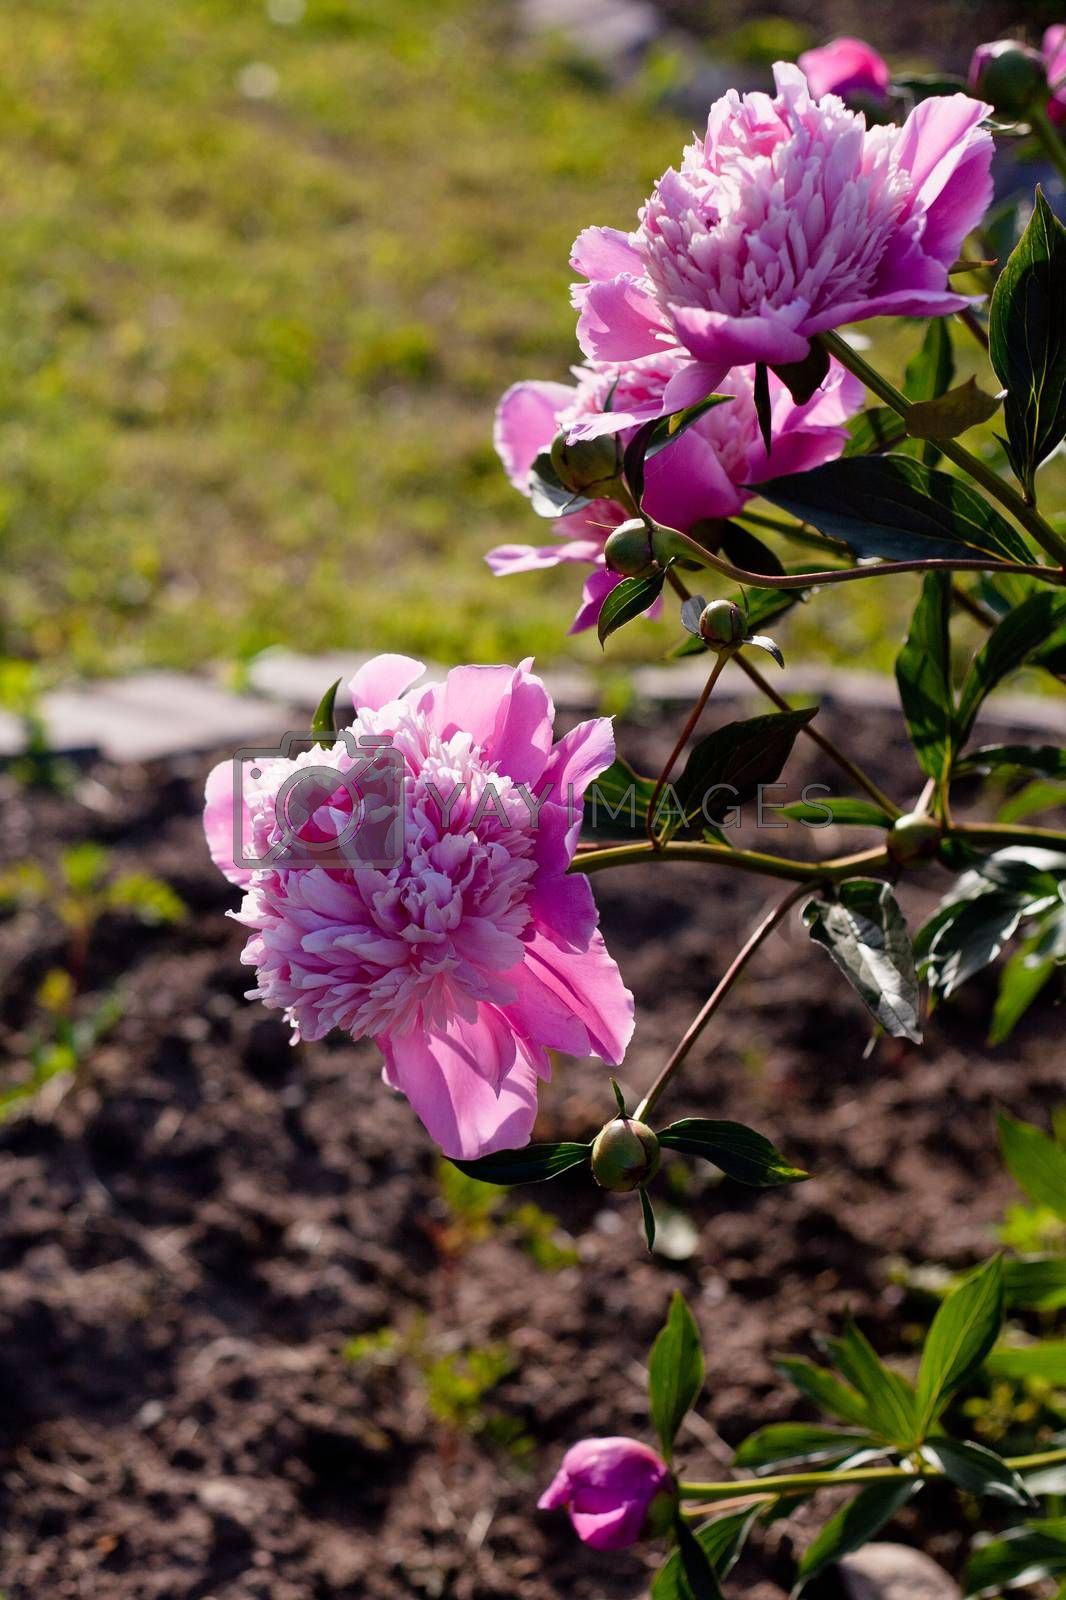 Royalty free image of Pink peonies by foaloce